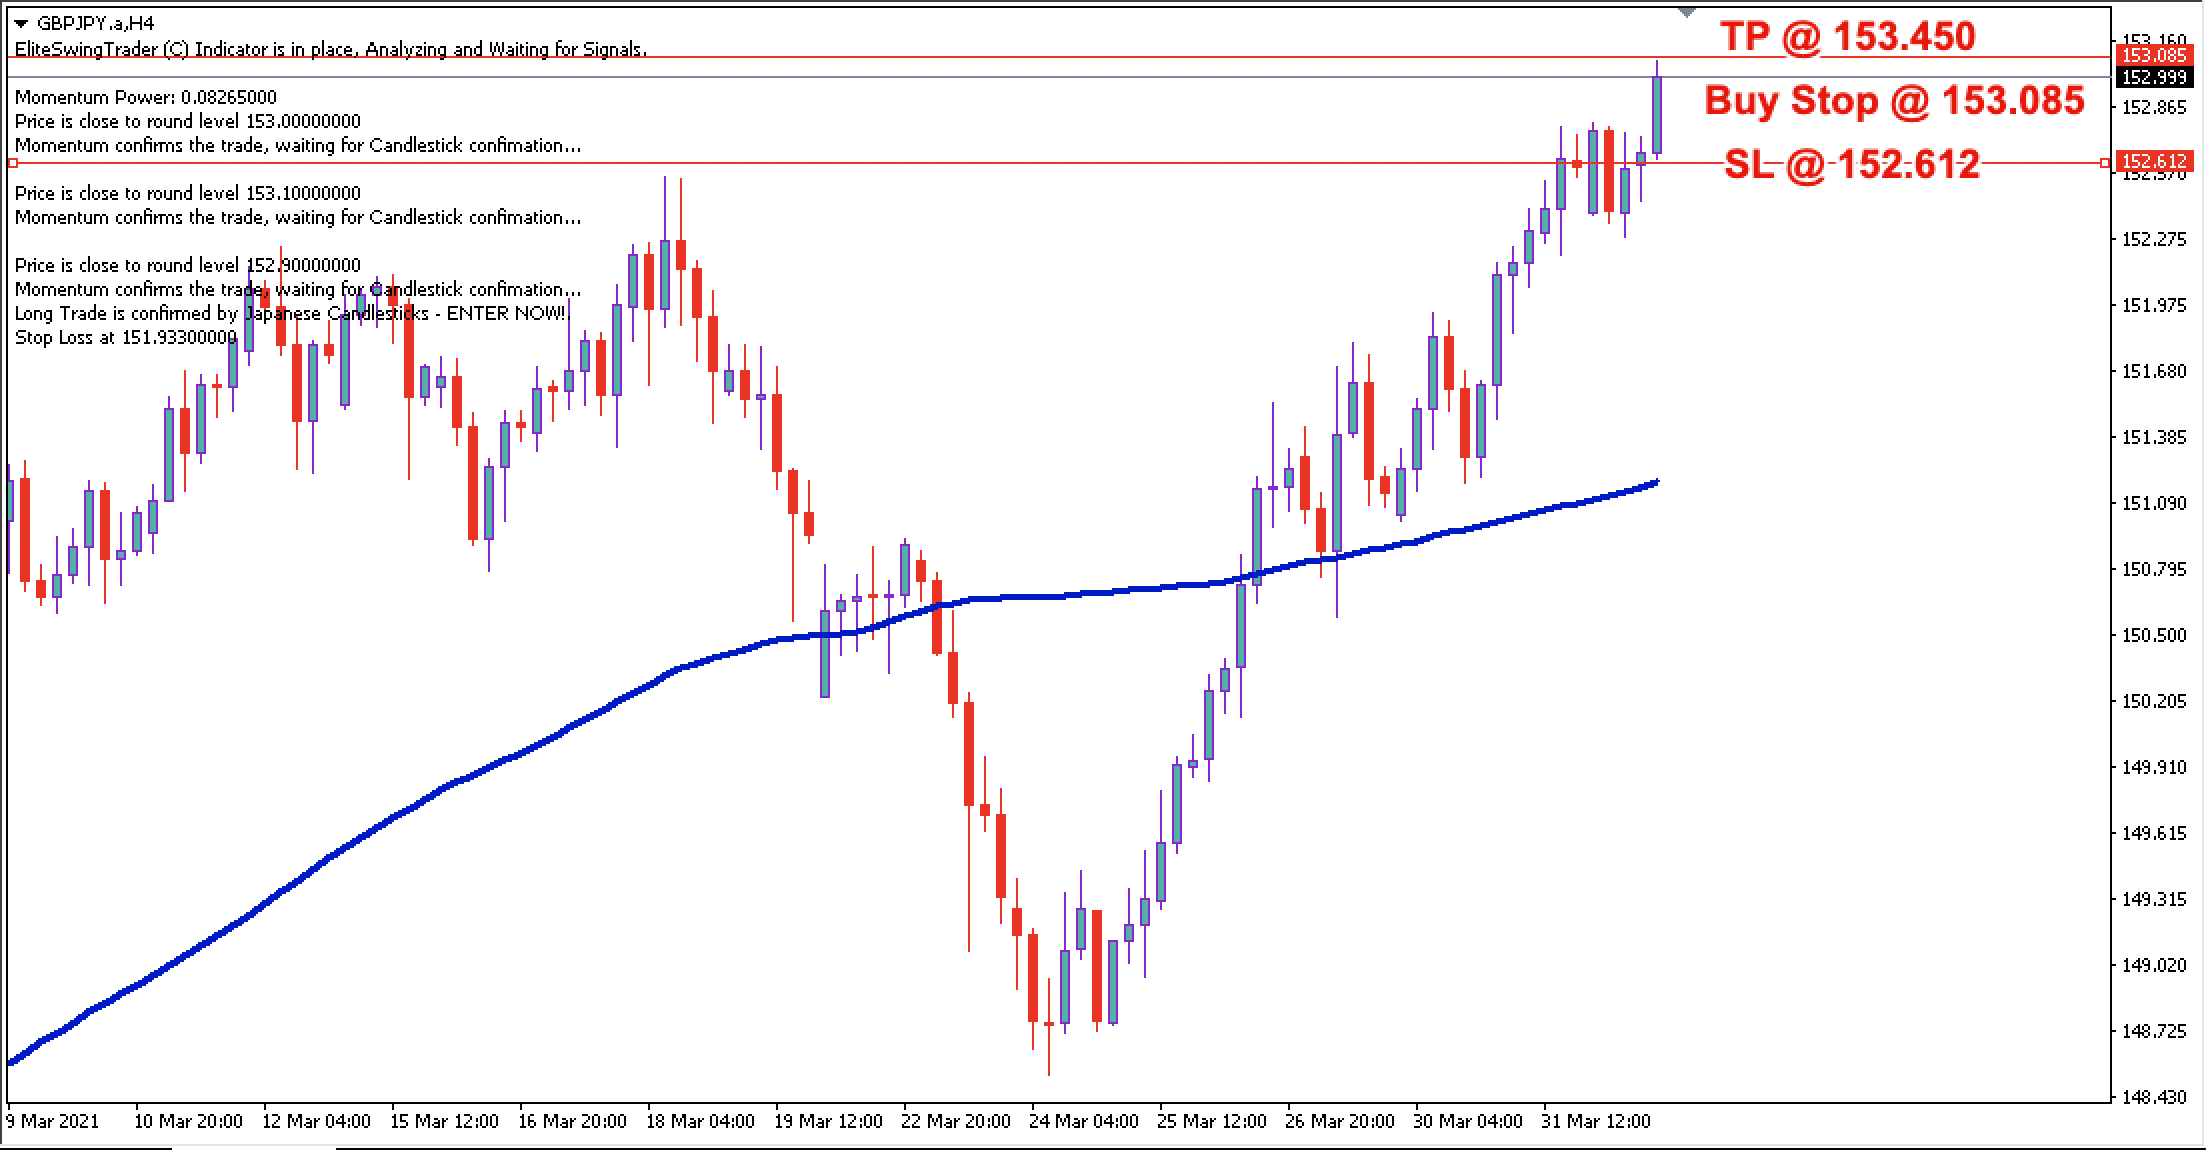 GBP/JPY Daily Price Forecast - 1st April 2021